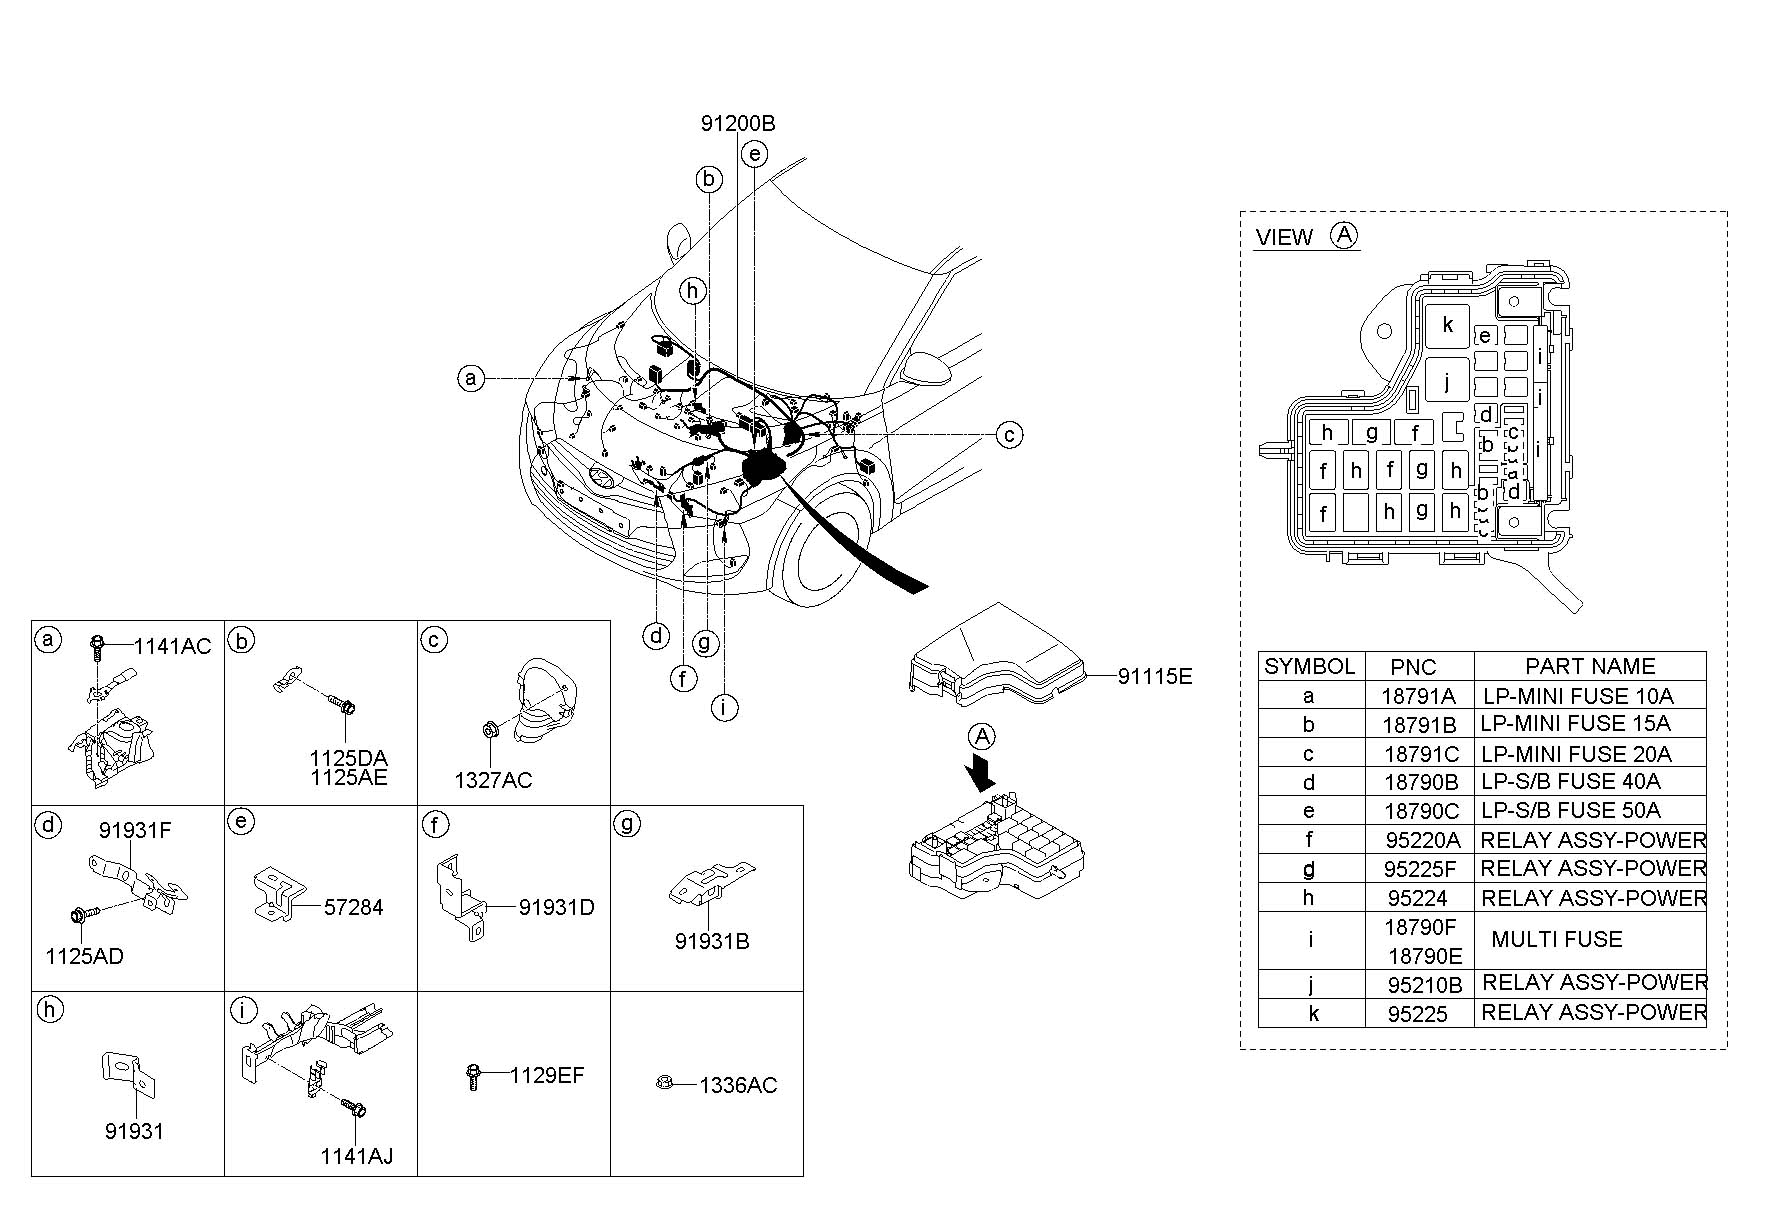 hyundai remote starter diagram